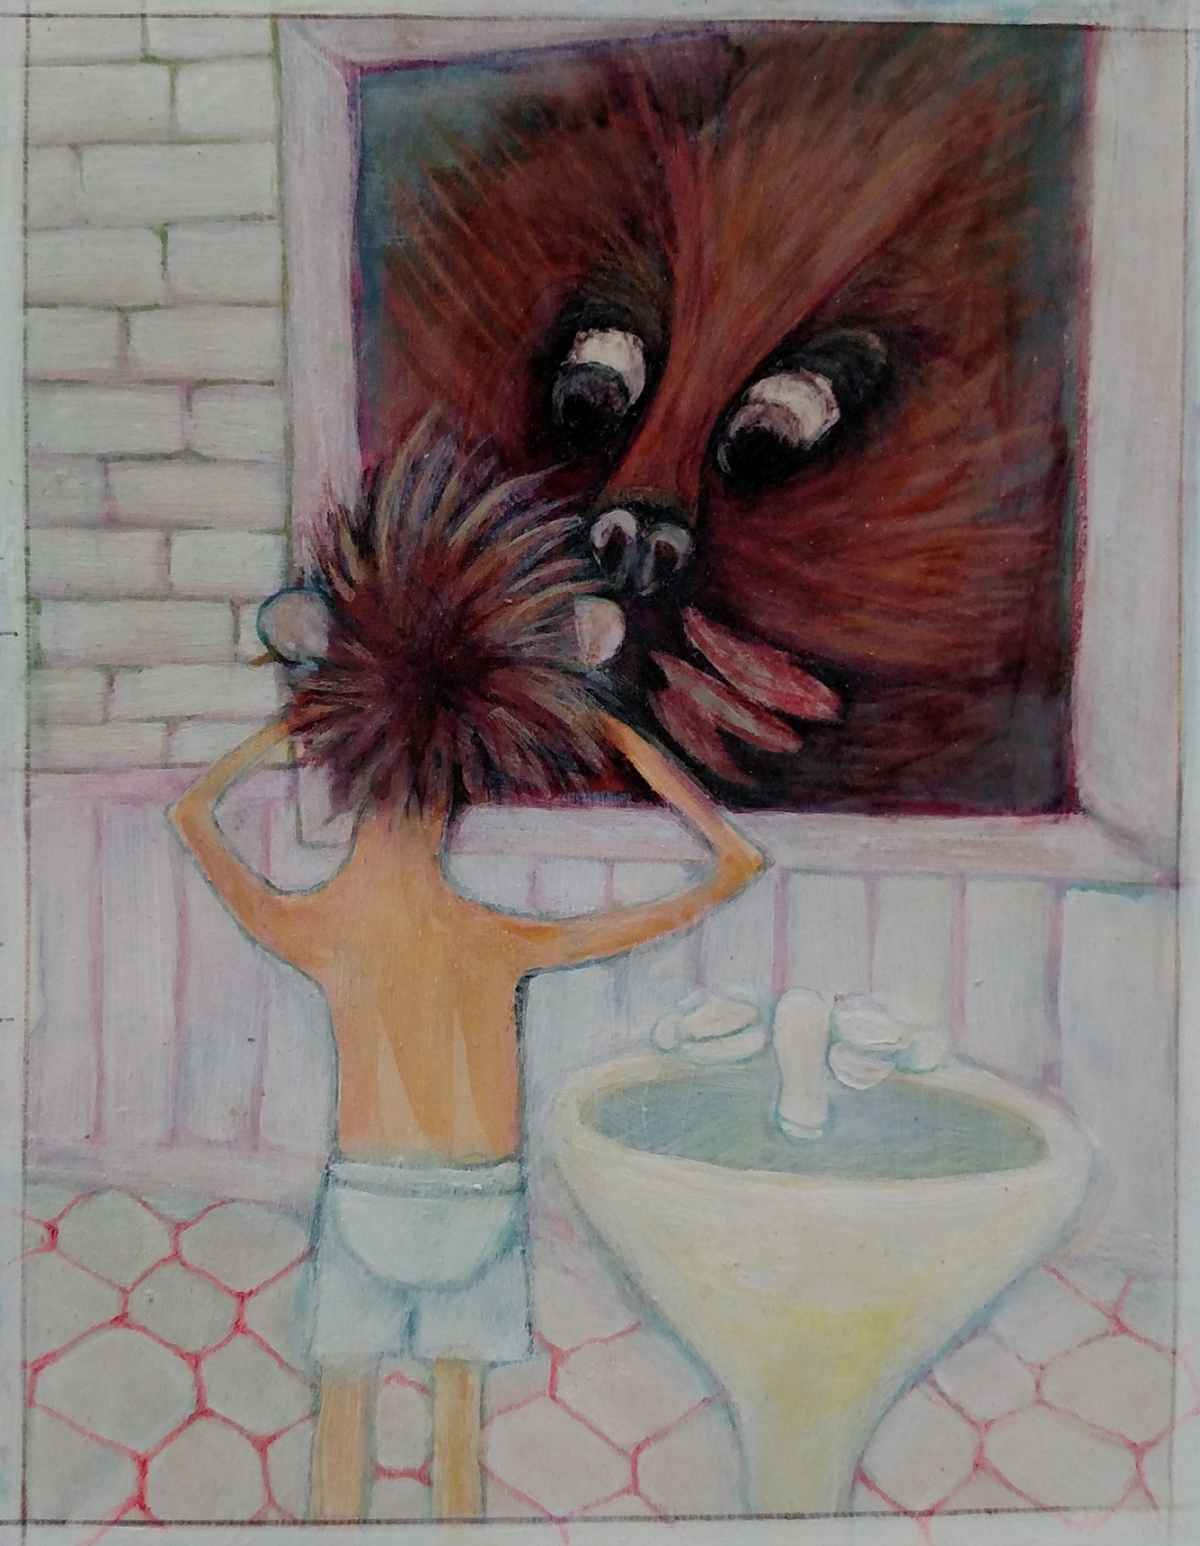 Illustration of a boy looking into a mirror. His reflection is the face of a giant porcupine..